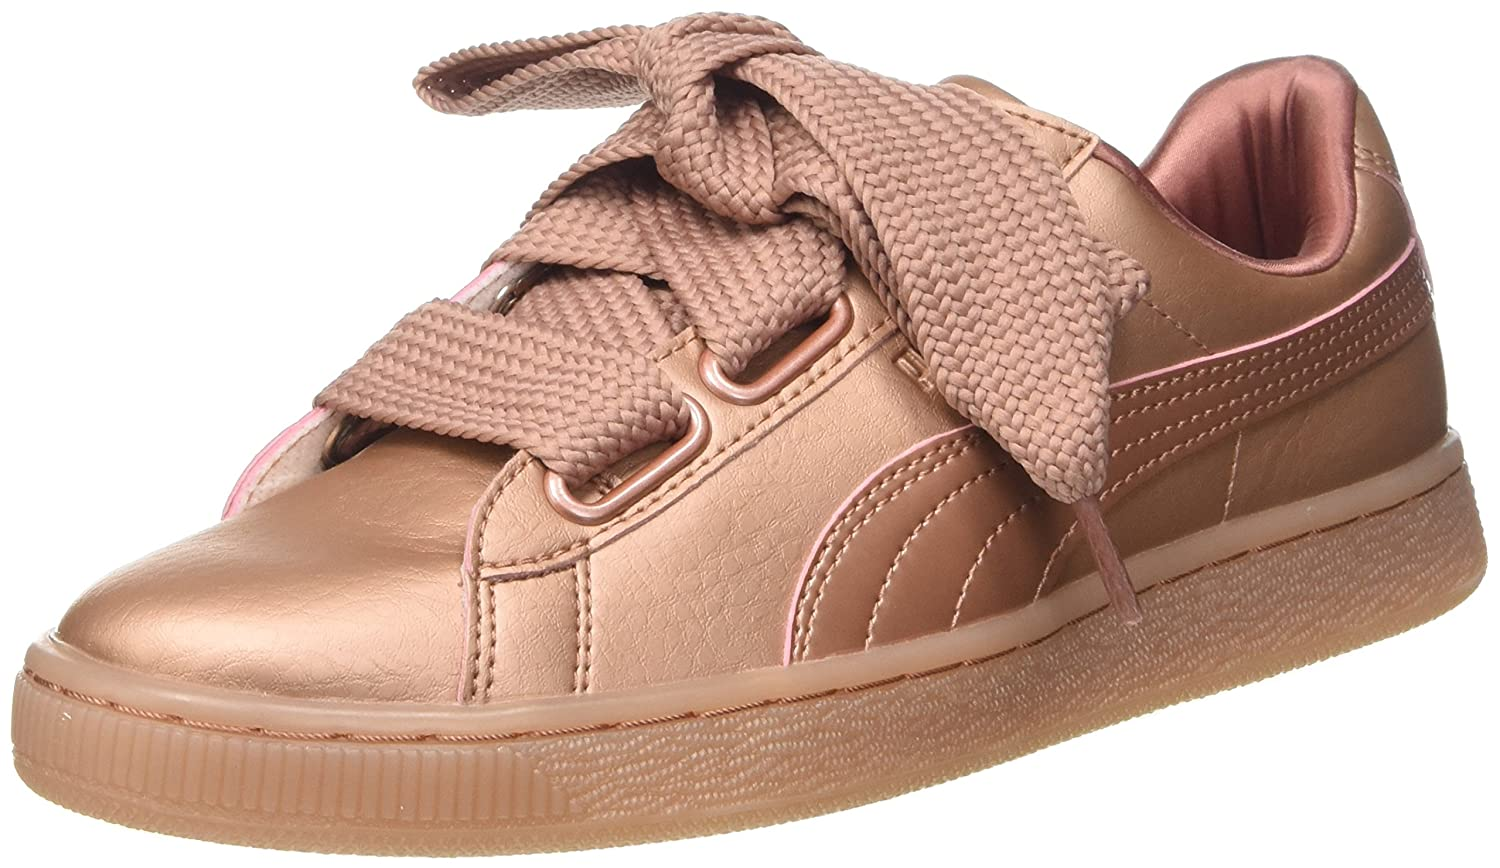 online store df340 fcfed Amazon.com: PUMA Basket Heart Copper, Women's Trainers: Shoes